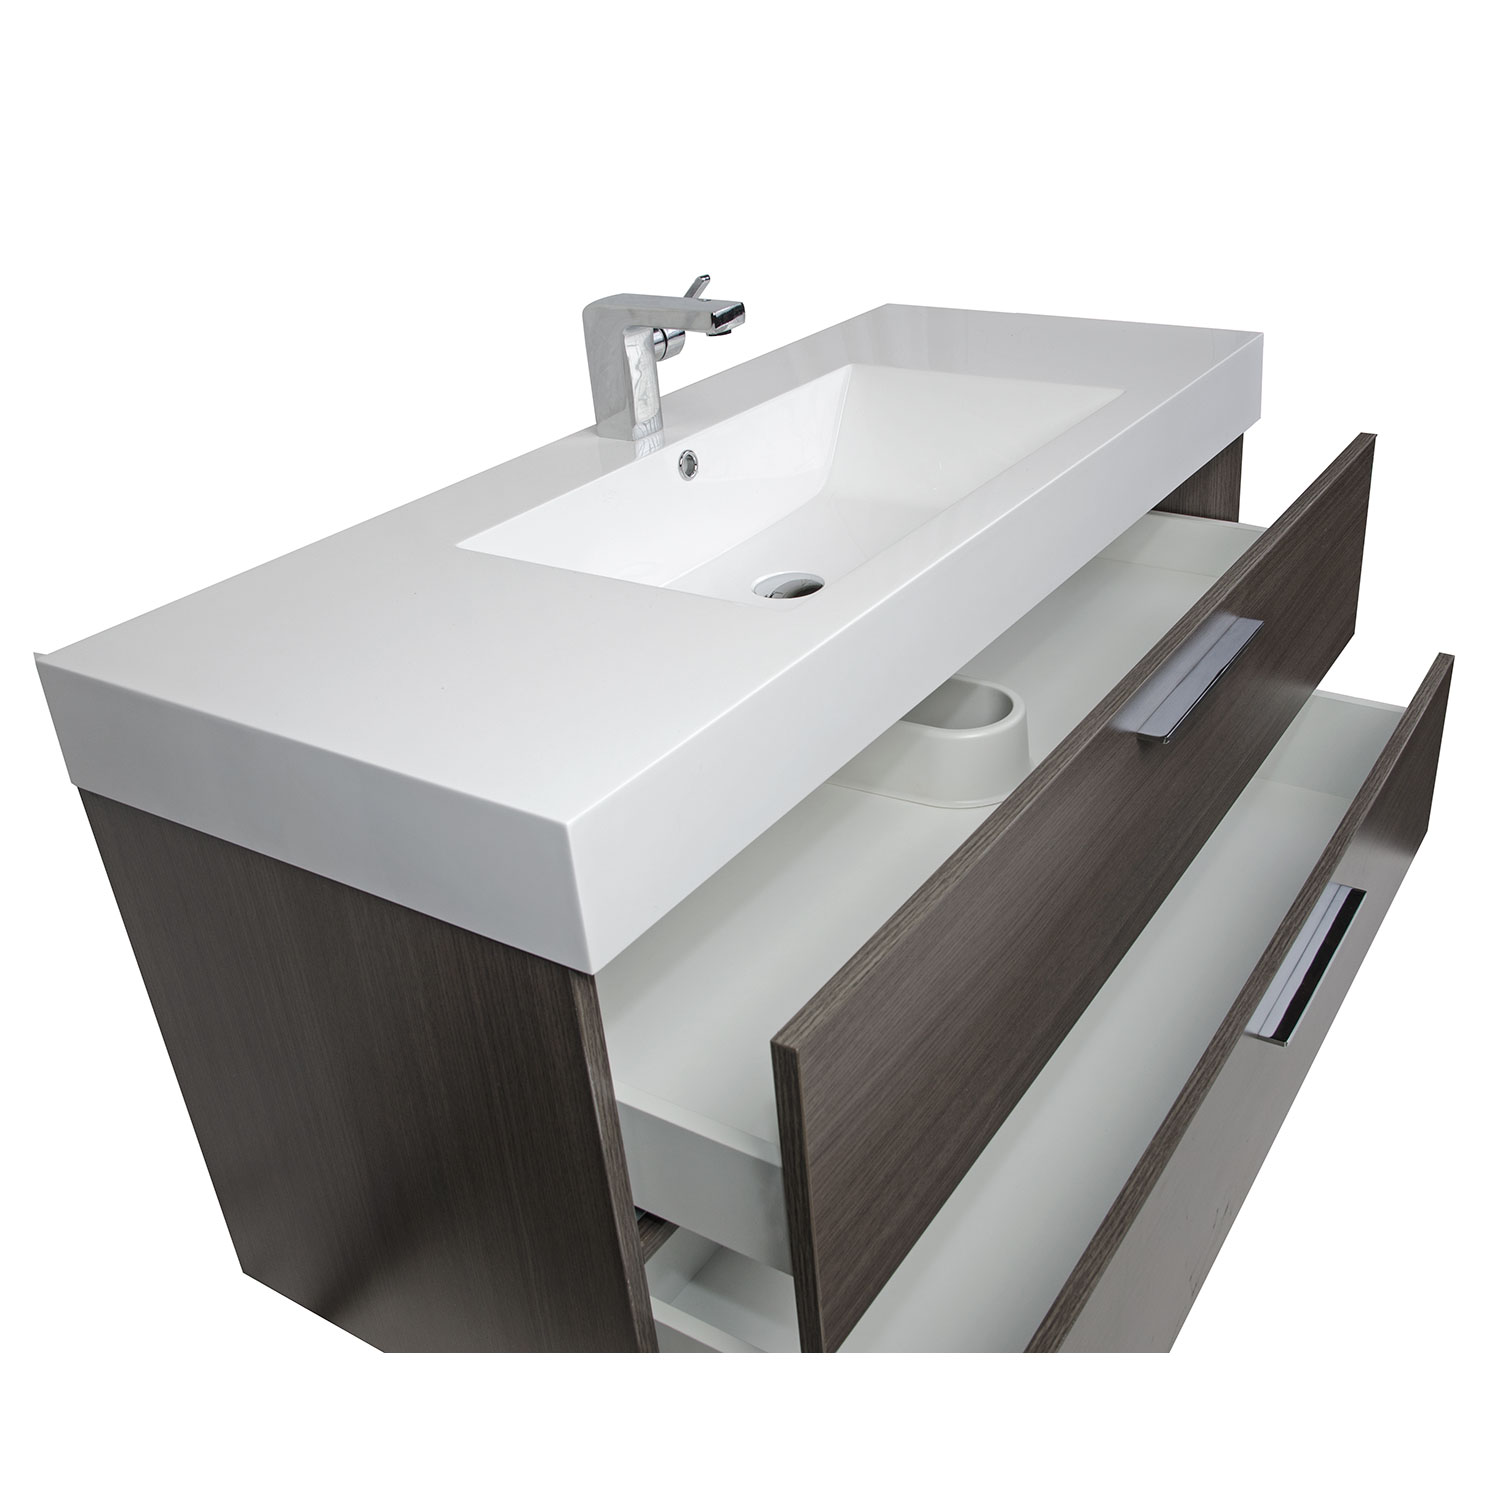 contemporary bathroom vanity. 47  Wall Mount Contemporary Bathroom Vanity Grey Oak TN T1200 1 GO Optional Legs RS L1200